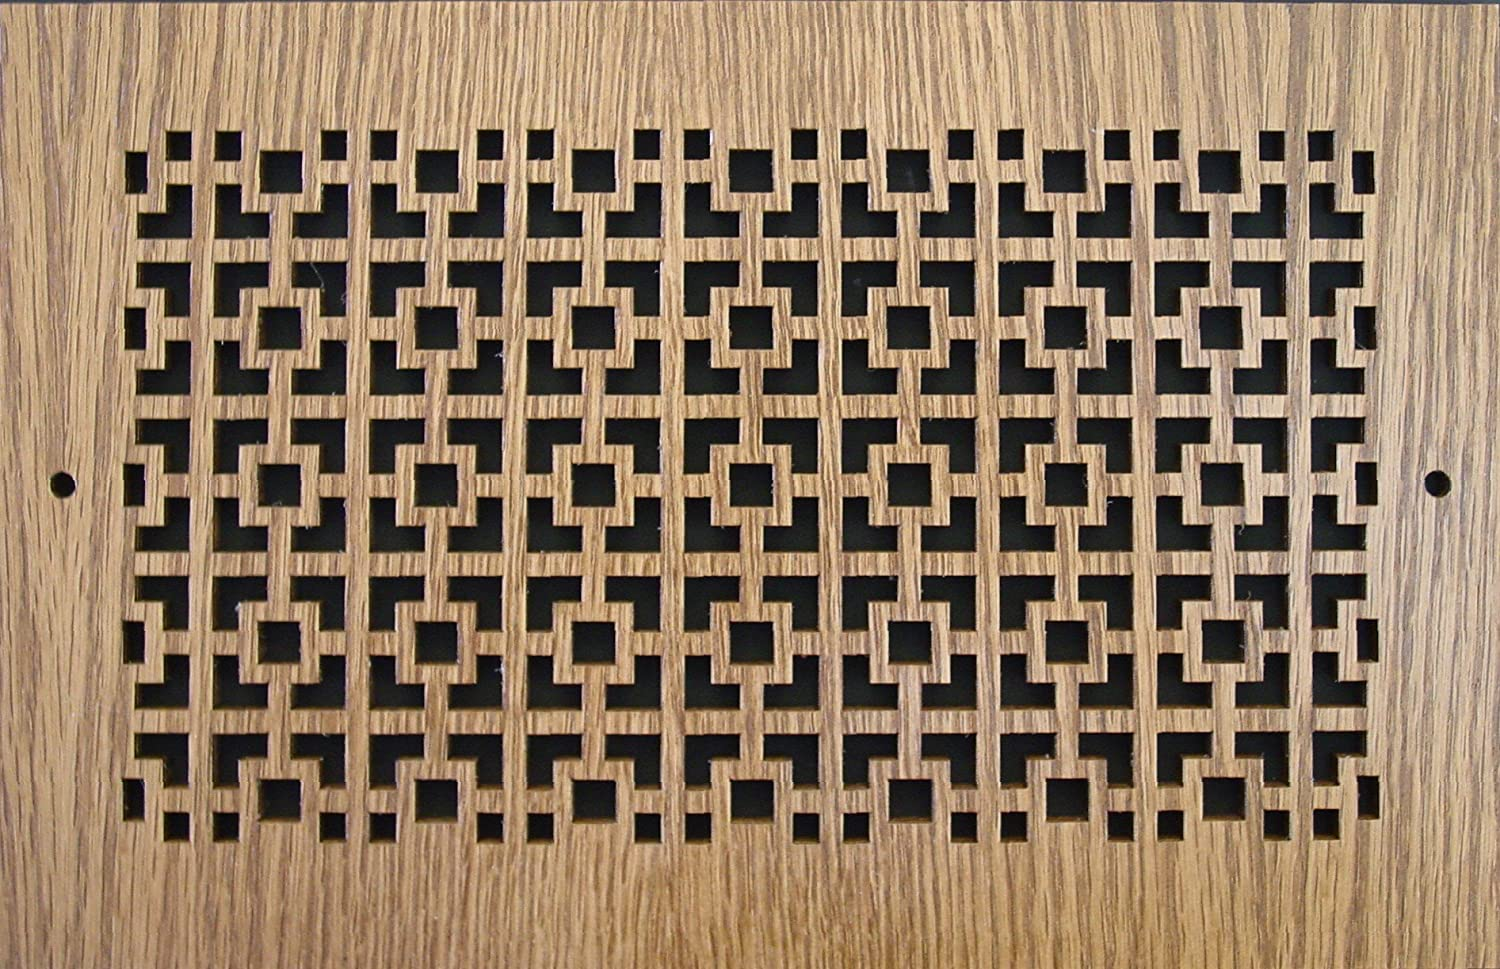 inches = 12 x 8 Pattern Cut Wood Grilles:1208 For Wall Opening Overall Size = 13-3//4 x 9-3//4 Oak Pattern A inches